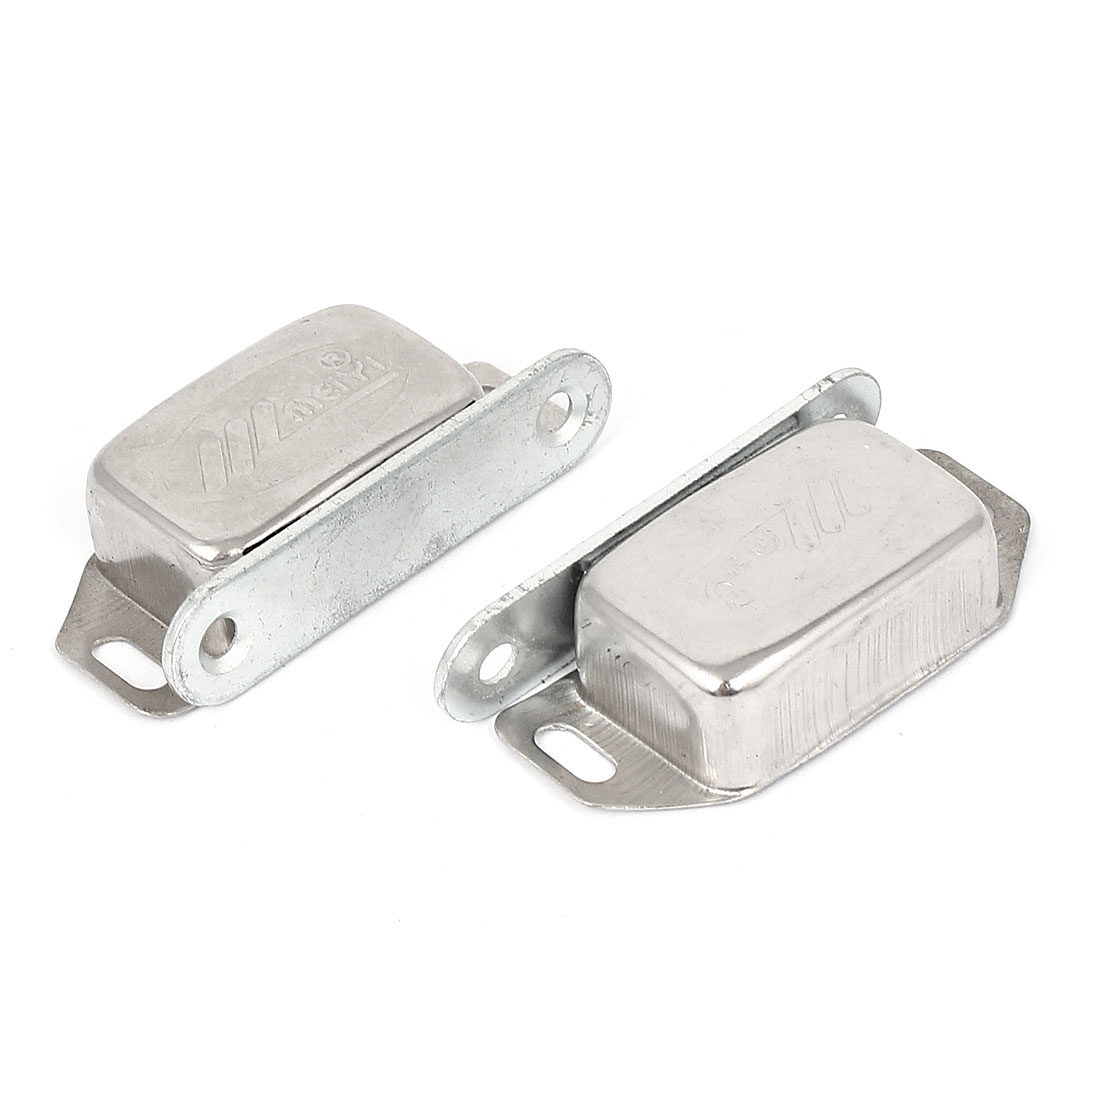 2pcs Stainless Steel Magnetic Catches for Kitchen Cabinet Cupboard Wardrobe Doors